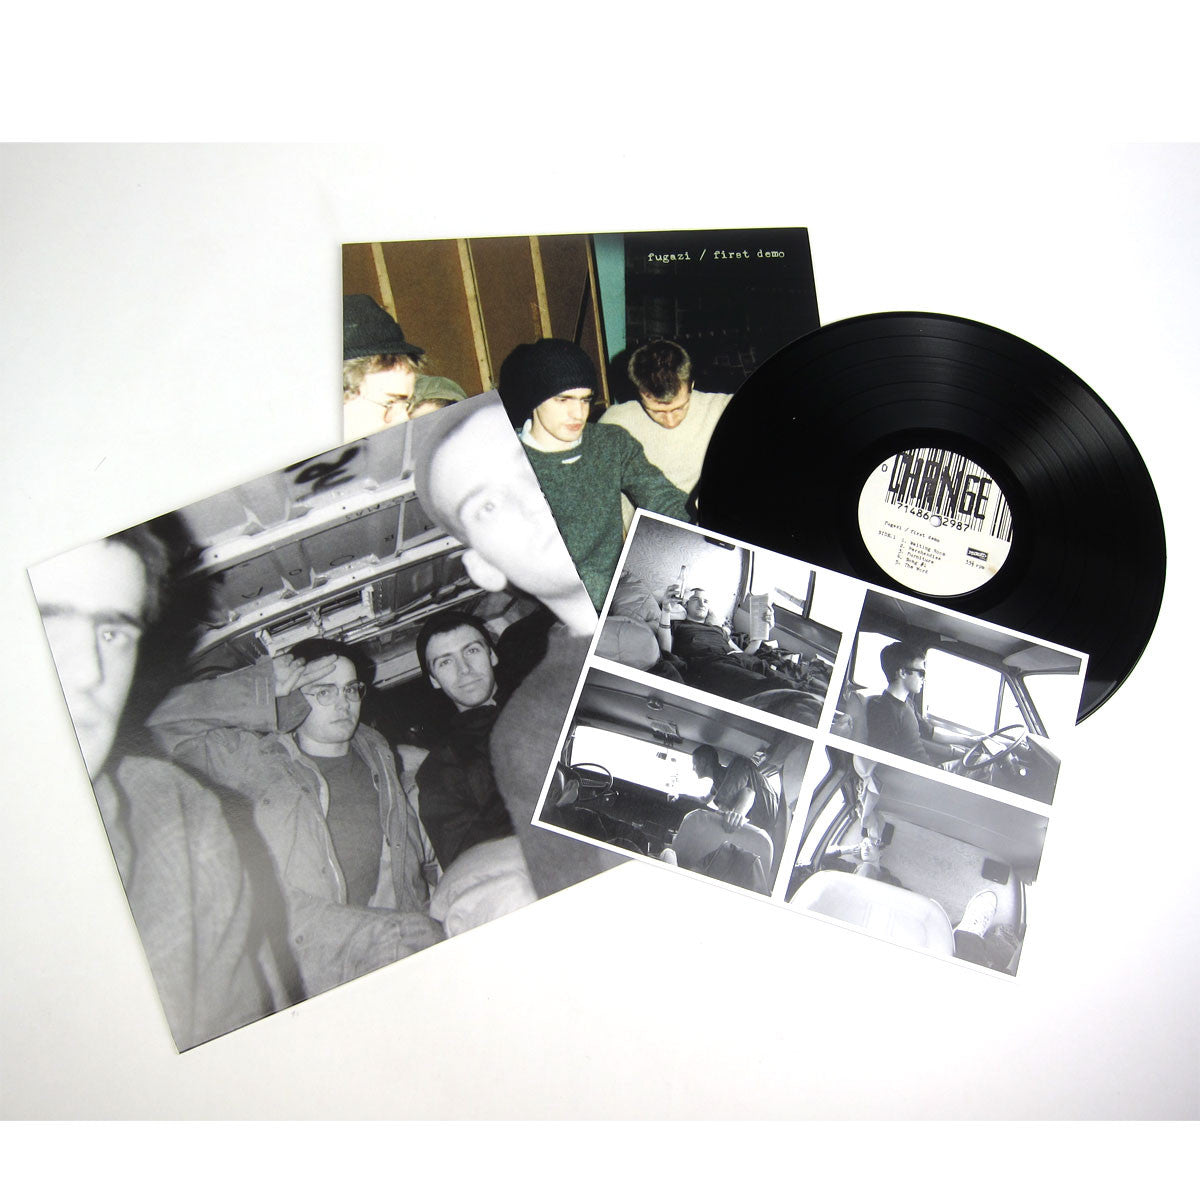 Fugazi: First Demo (Free MP3) Vinyl LP detail